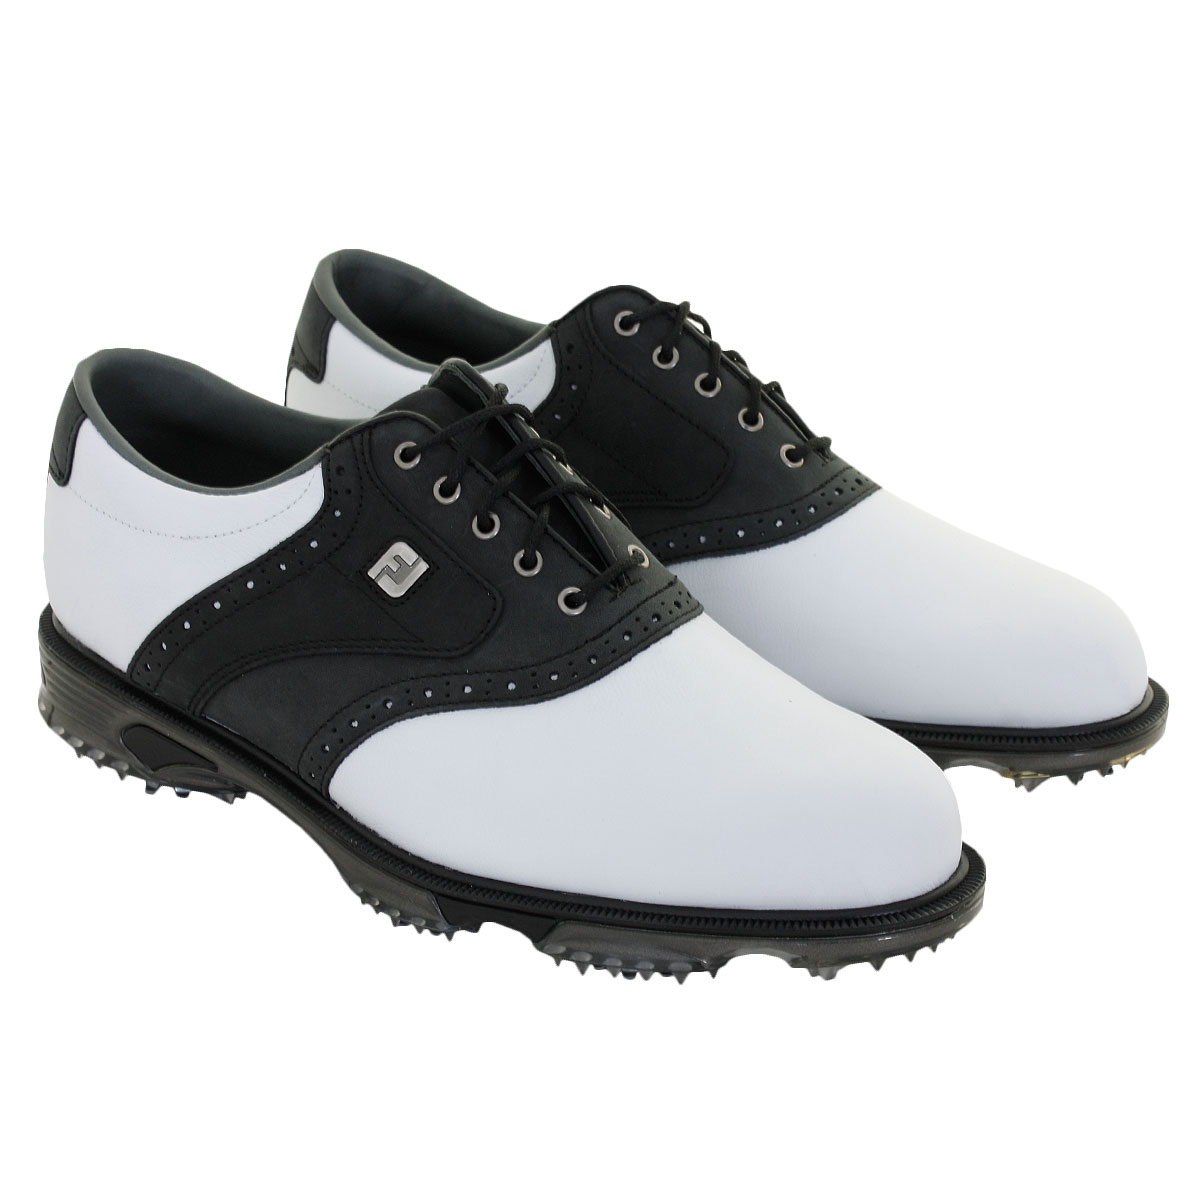 Footjoy-Mens-DryJoys-Tour-Golf-Waterproof-Spiked-Golf-Shoes-53-OFF-RRP thumbnail 10